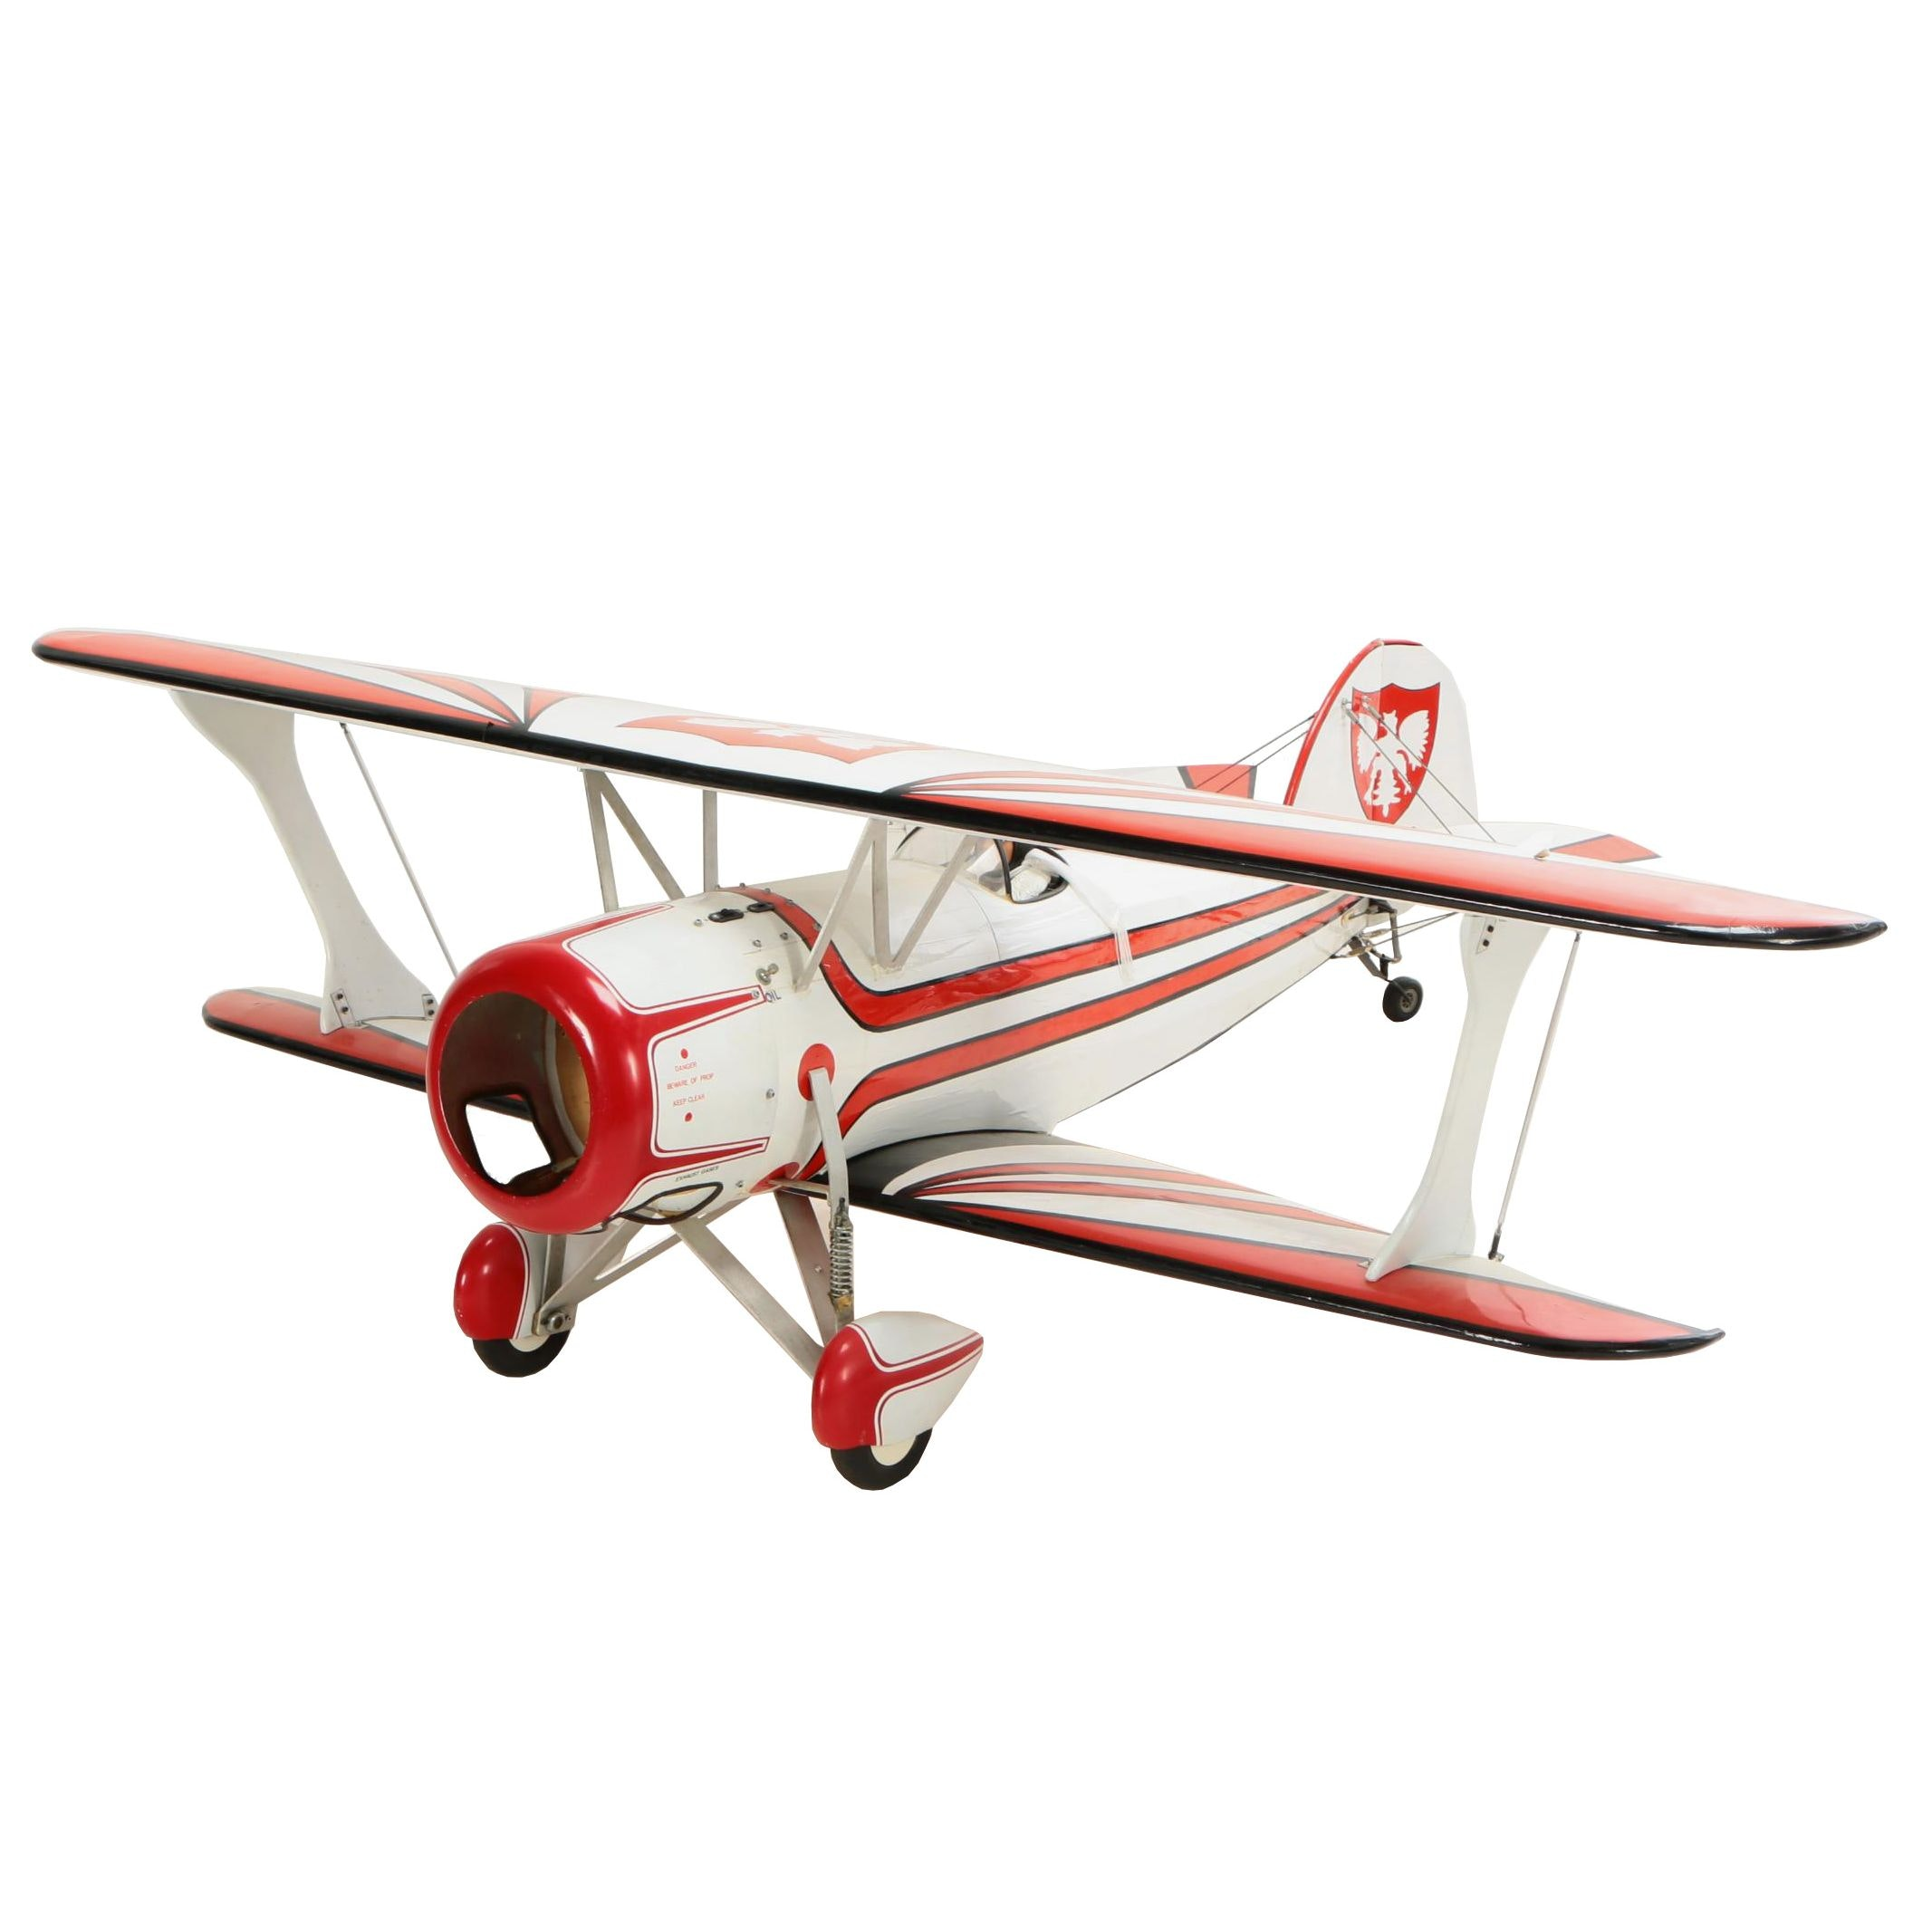 Large Radio Controlled Wood and Vinyl Biplane with Polish Heralic Eagles